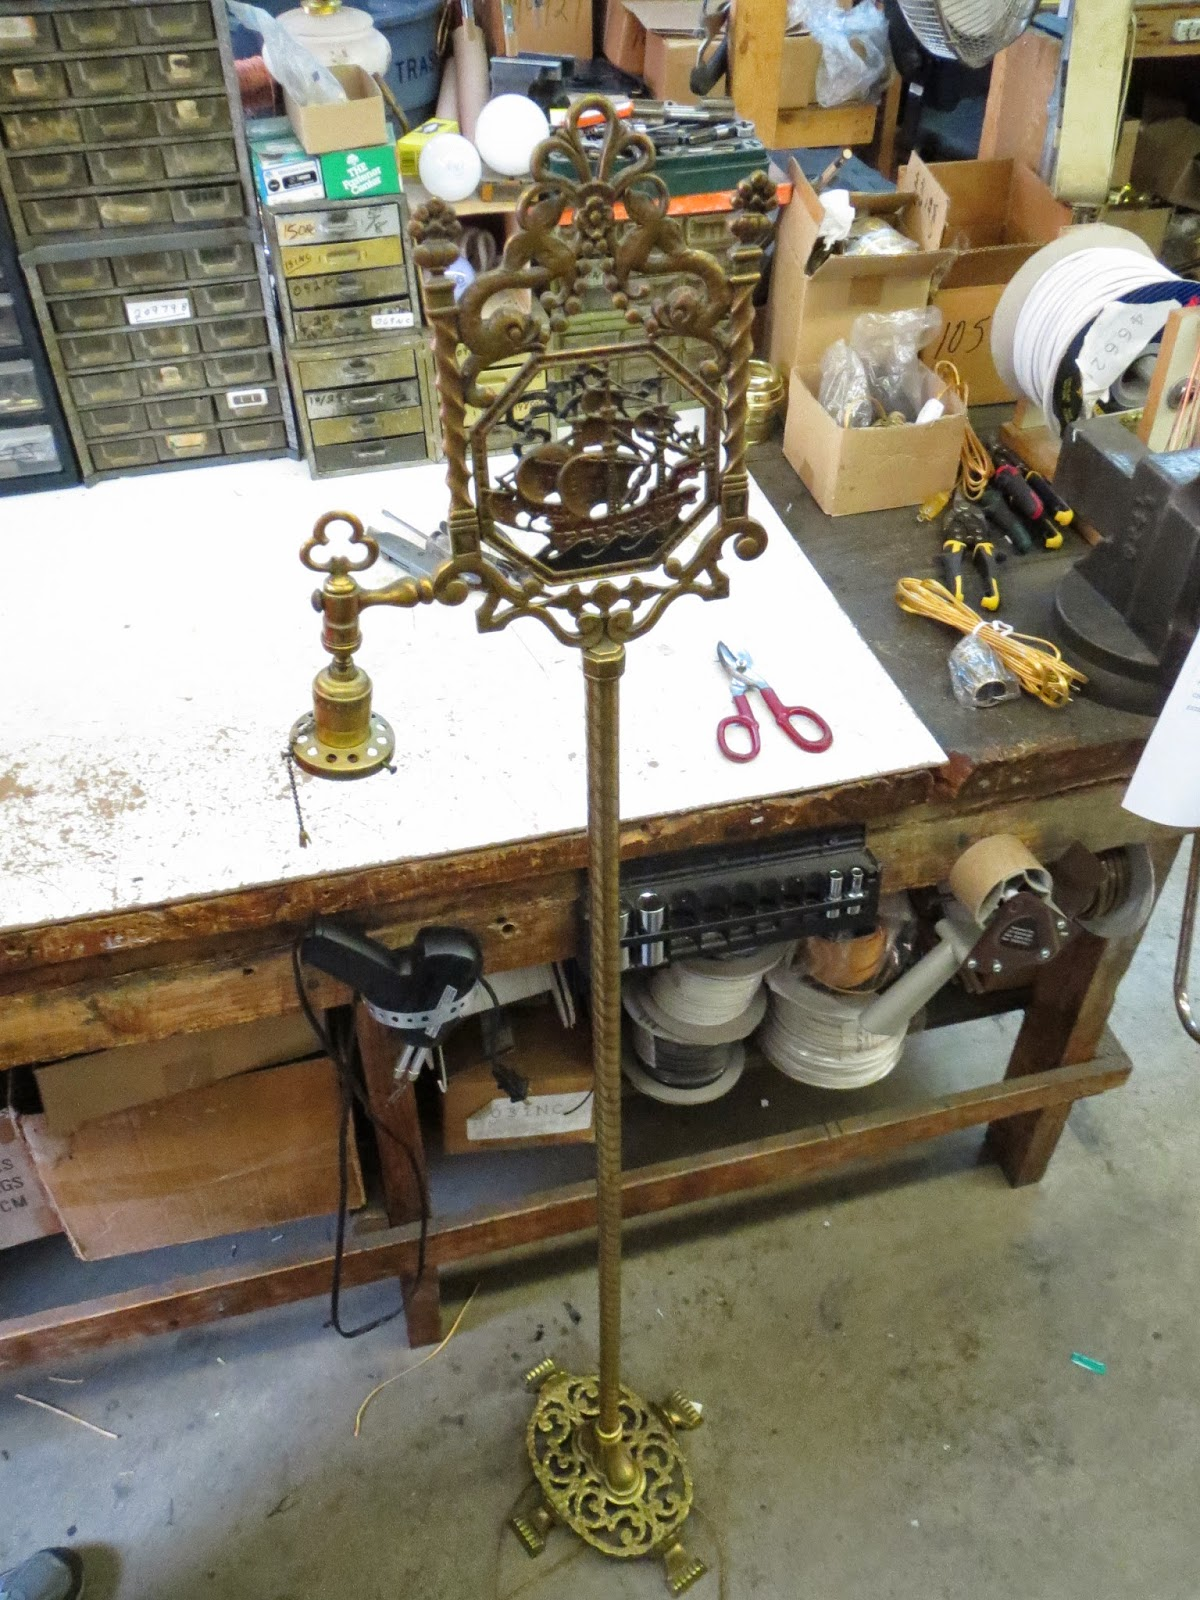 Lamp Parts and Repair | Lamp Doctor: October 2014 on old clocks, old windows, old telephones, old toys, old antiques, old paintings, old fireplaces, old ceiling fans, old mirrors, old ceiling lights, old wall sconces, old musical instruments,